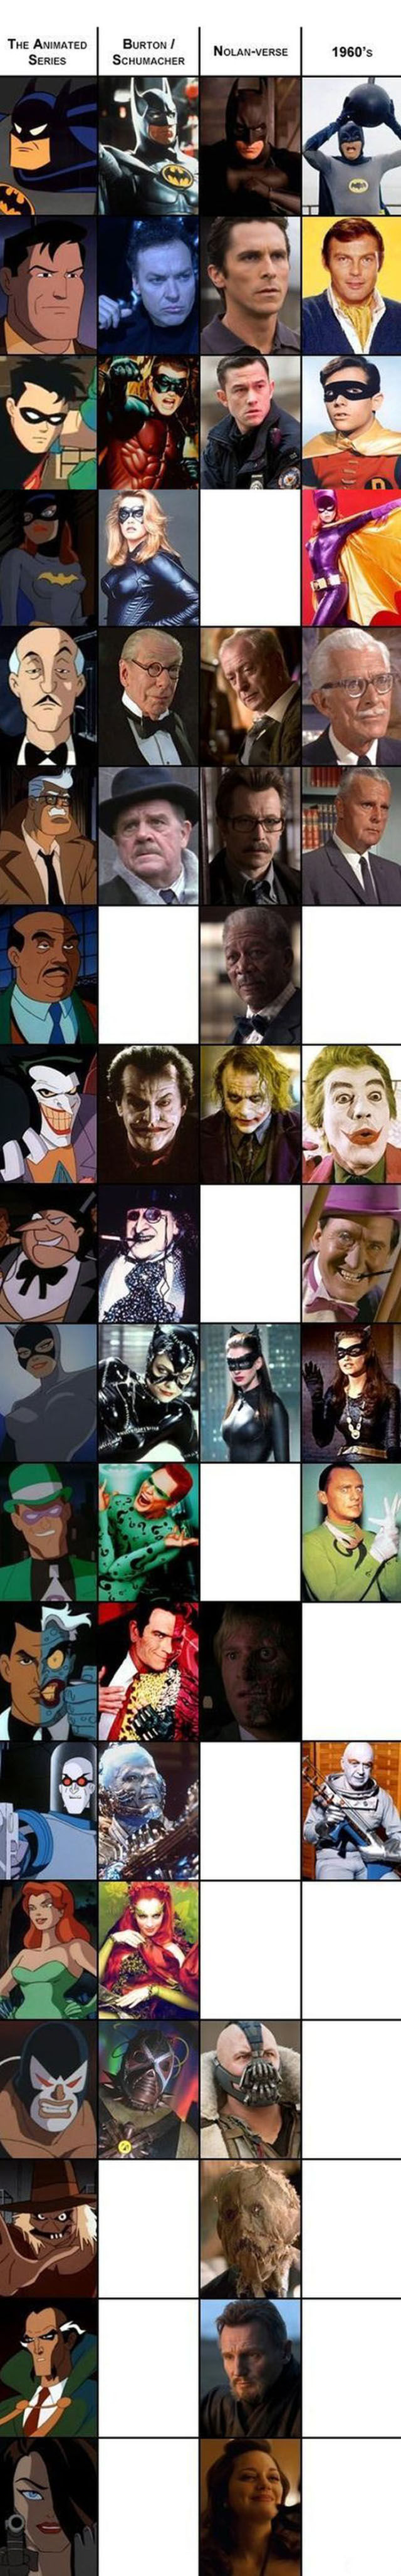 The Many Faces of Batman: A Comparison Chart